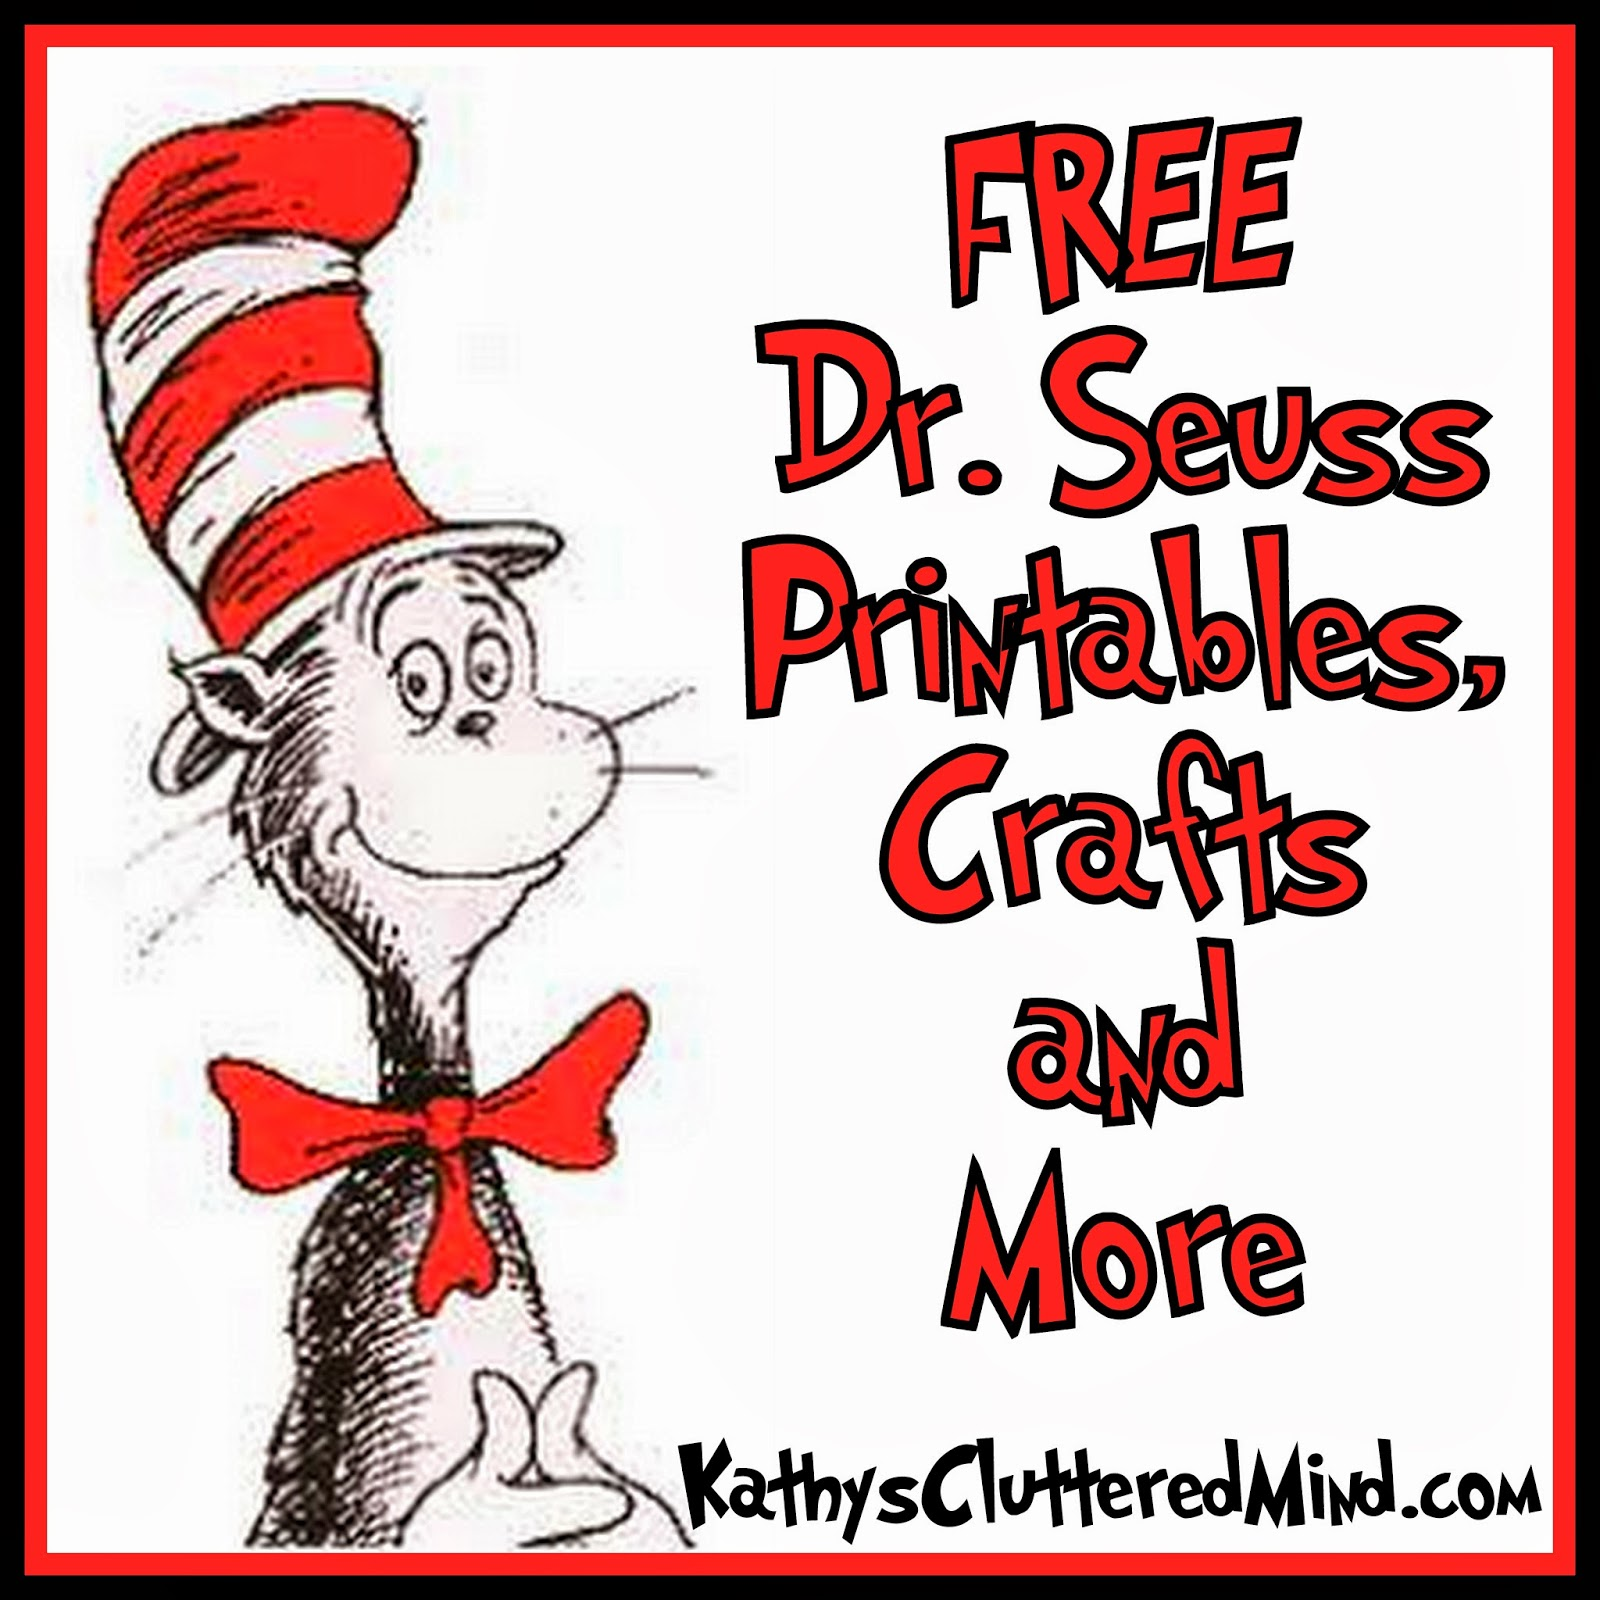 Kathys Cluttered Mind: FreeBEE Friday Link Up - FREE Dr. Seuss Resources